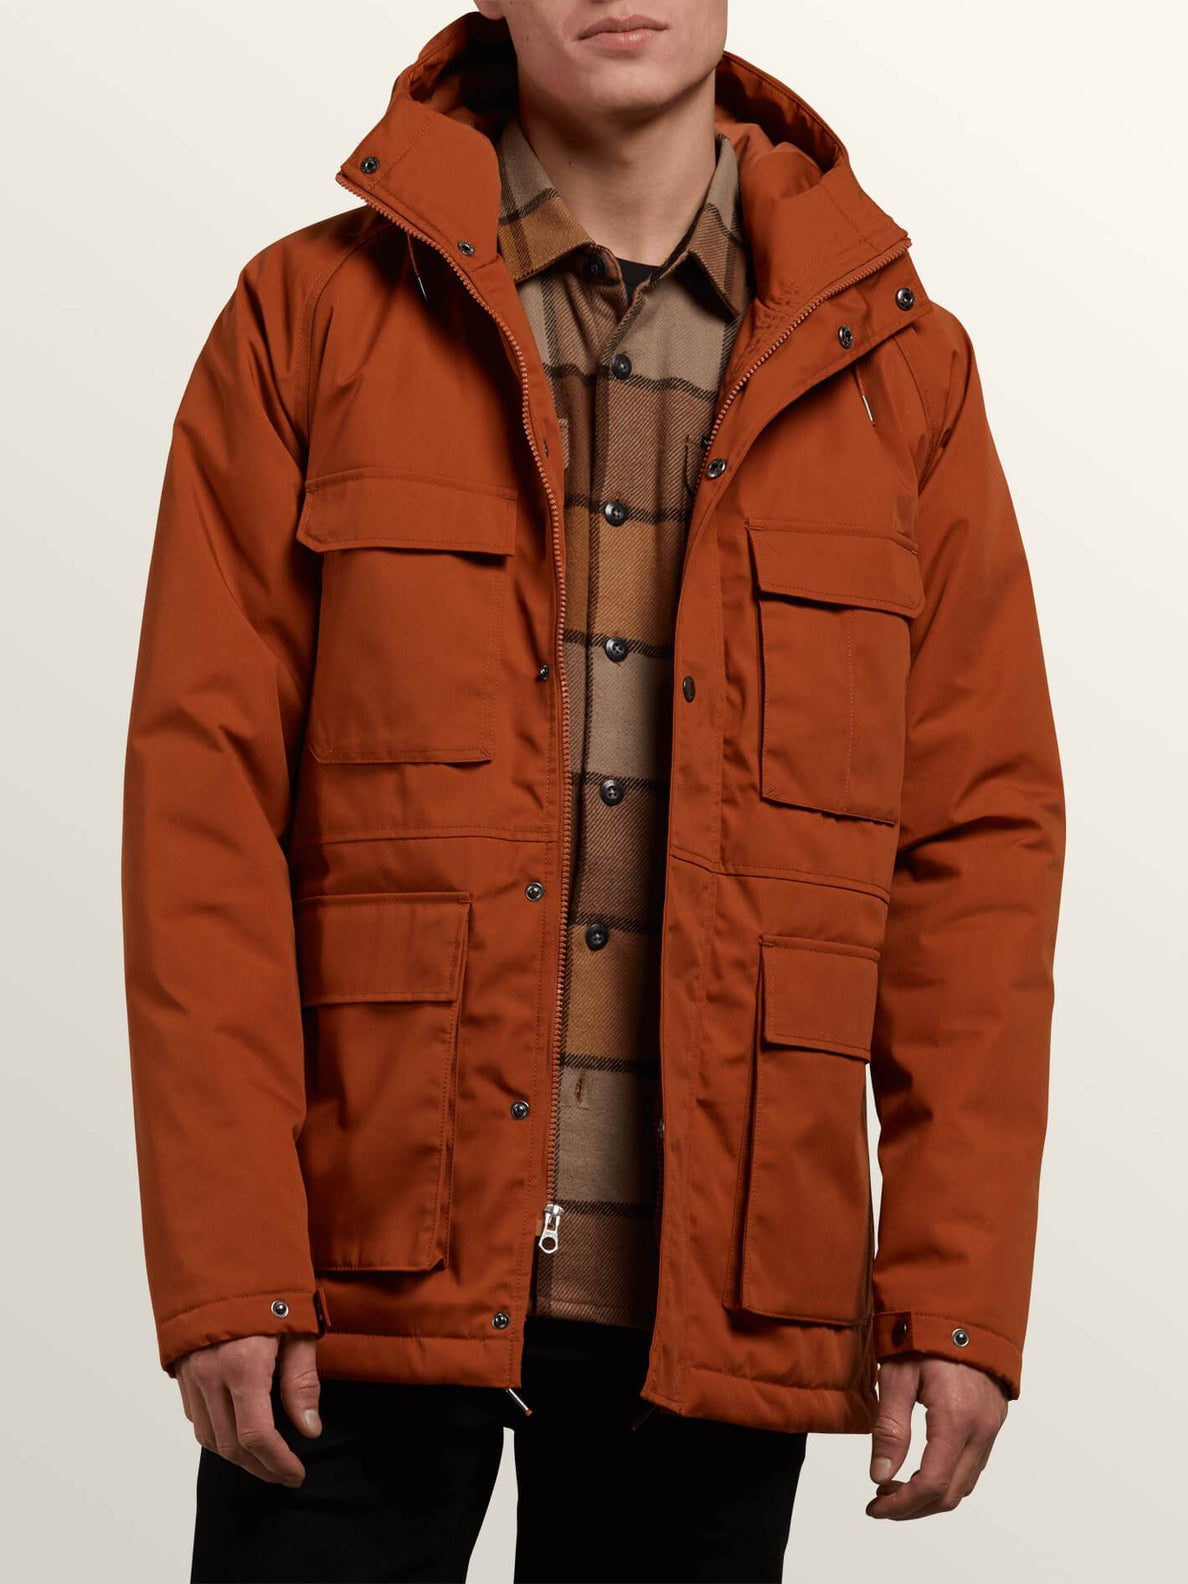 Renton Winter Parka In Hazelnut, Alternate View